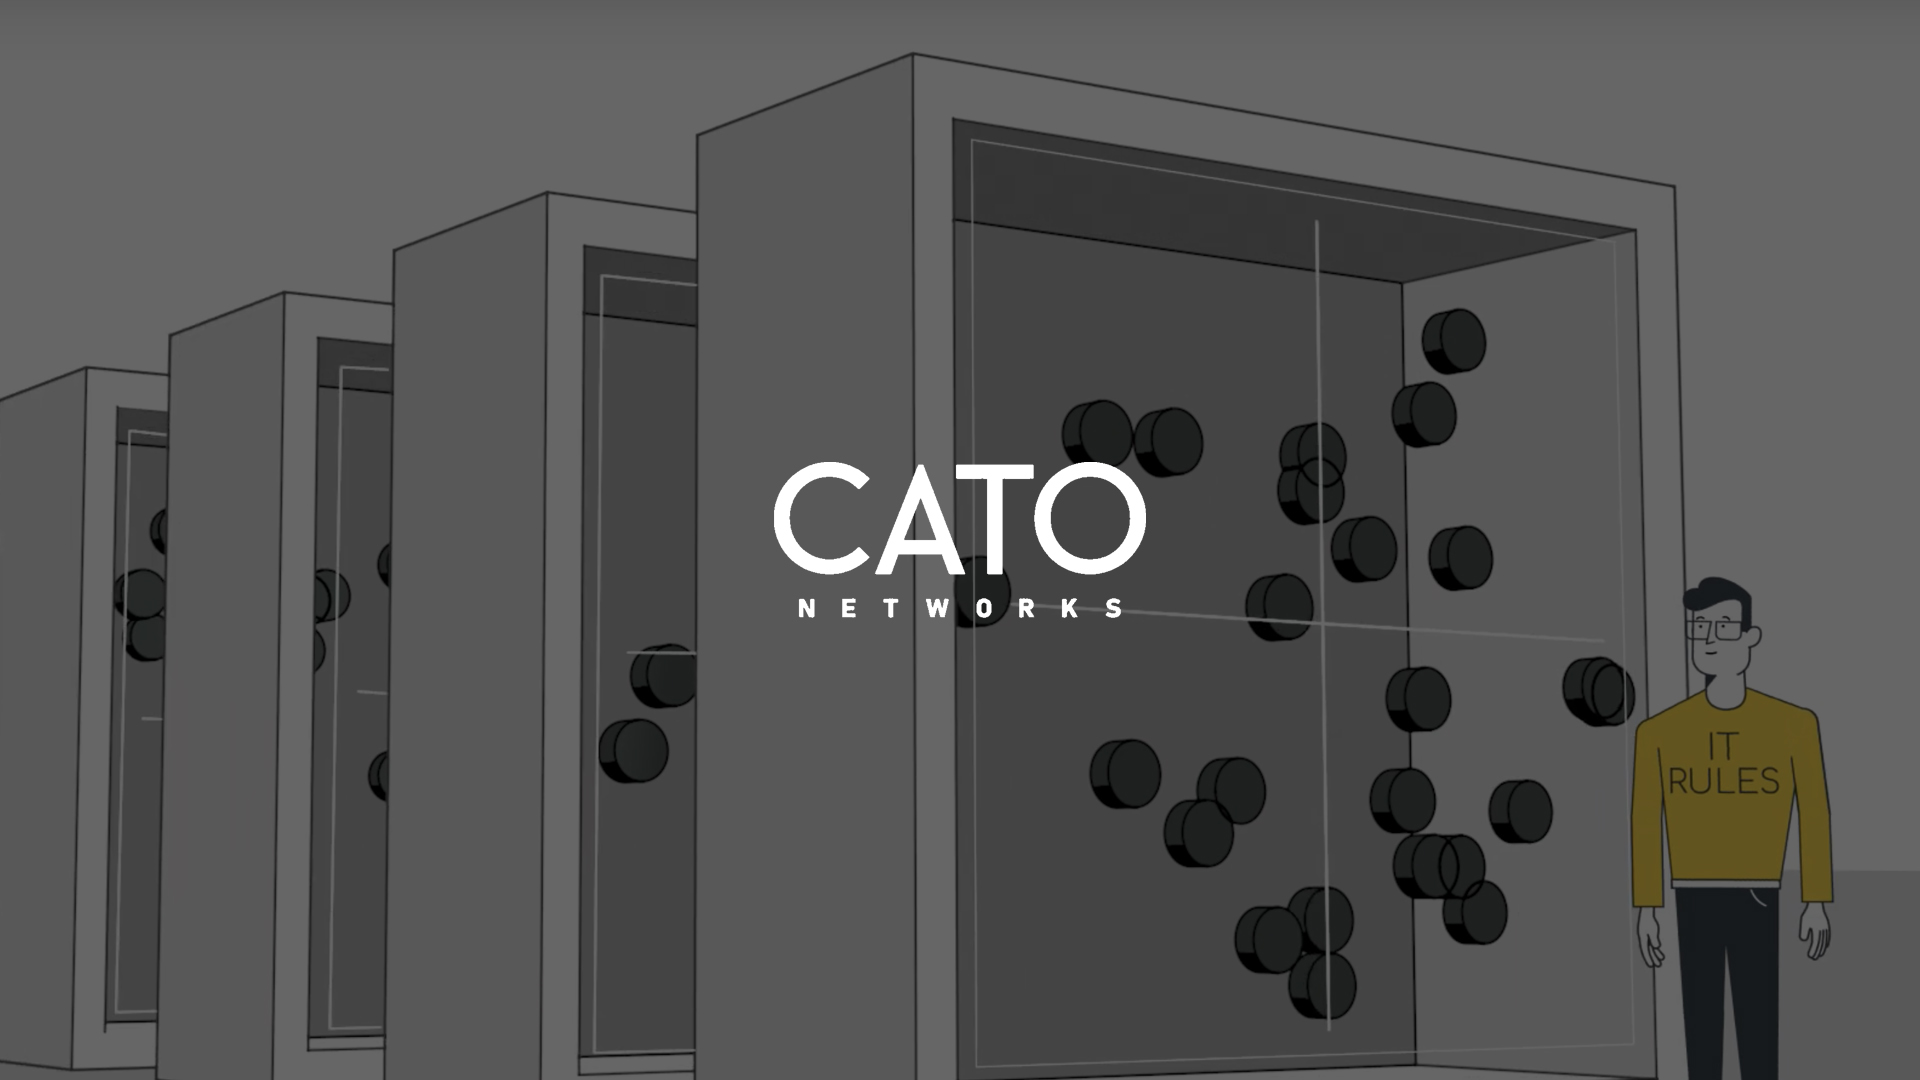 Cato Networks: The 4 Key Considerations for Extending Your Business Continuity Plan (BCP) to Home and Remote Workers